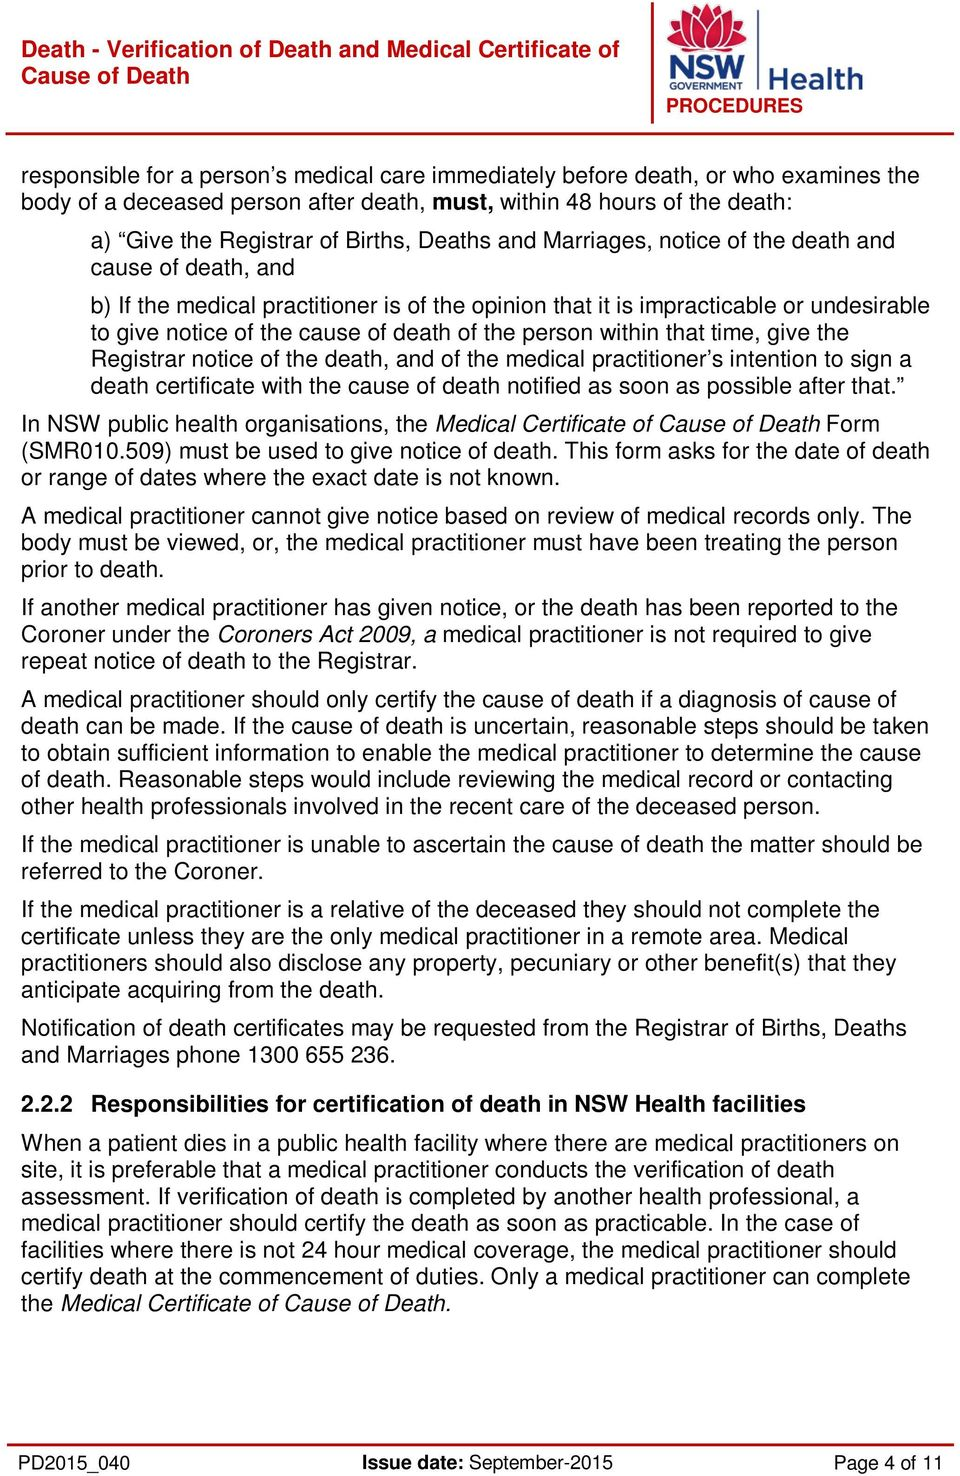 person within that time, give the Registrar notice of the death, and of the medical practitioner s intention to sign a death certificate with the cause of death notified as soon as possible after